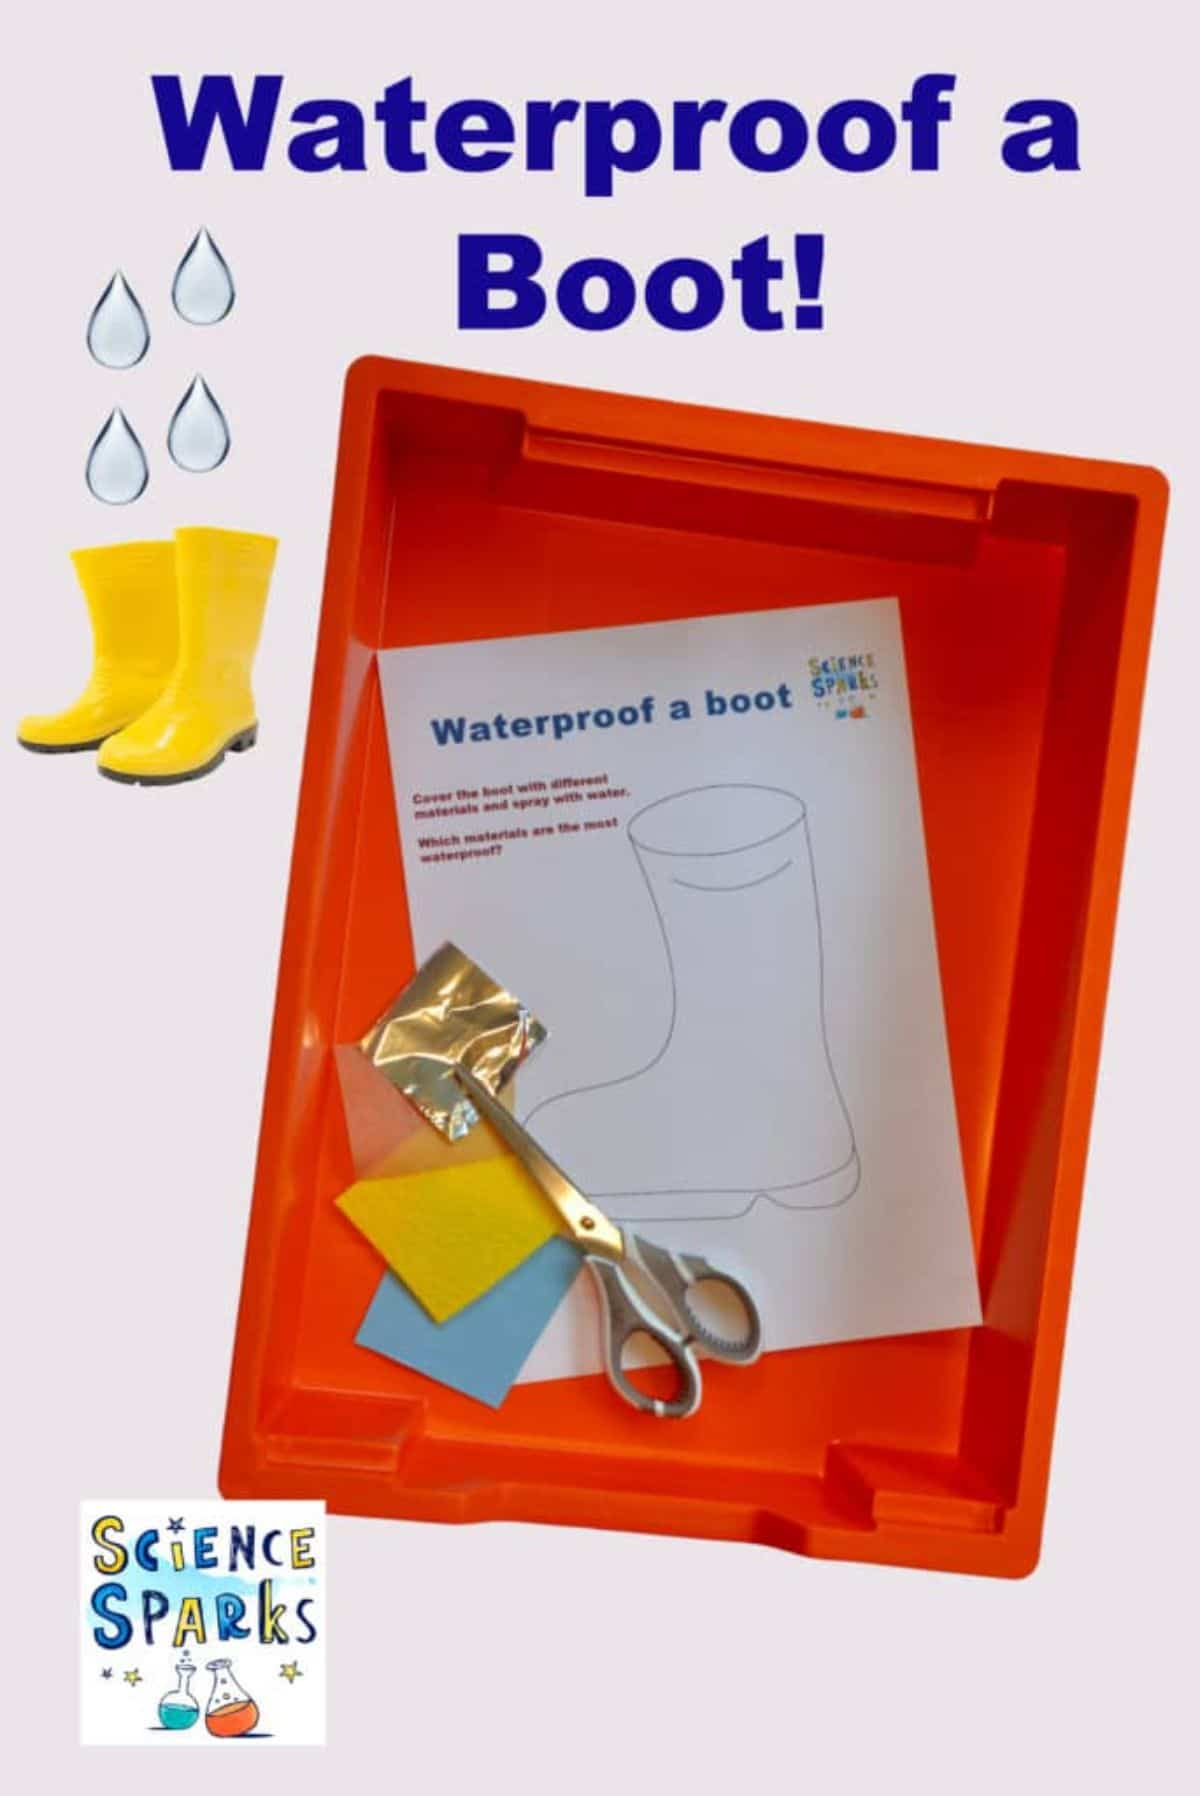 """The text reads """"Waterproof a Boot!"""" The image is of a red plastic tray. Inside the tray is a sheet of paper woth a boot drawn on it. Squares of different materials and a pair of scissors are next to it"""